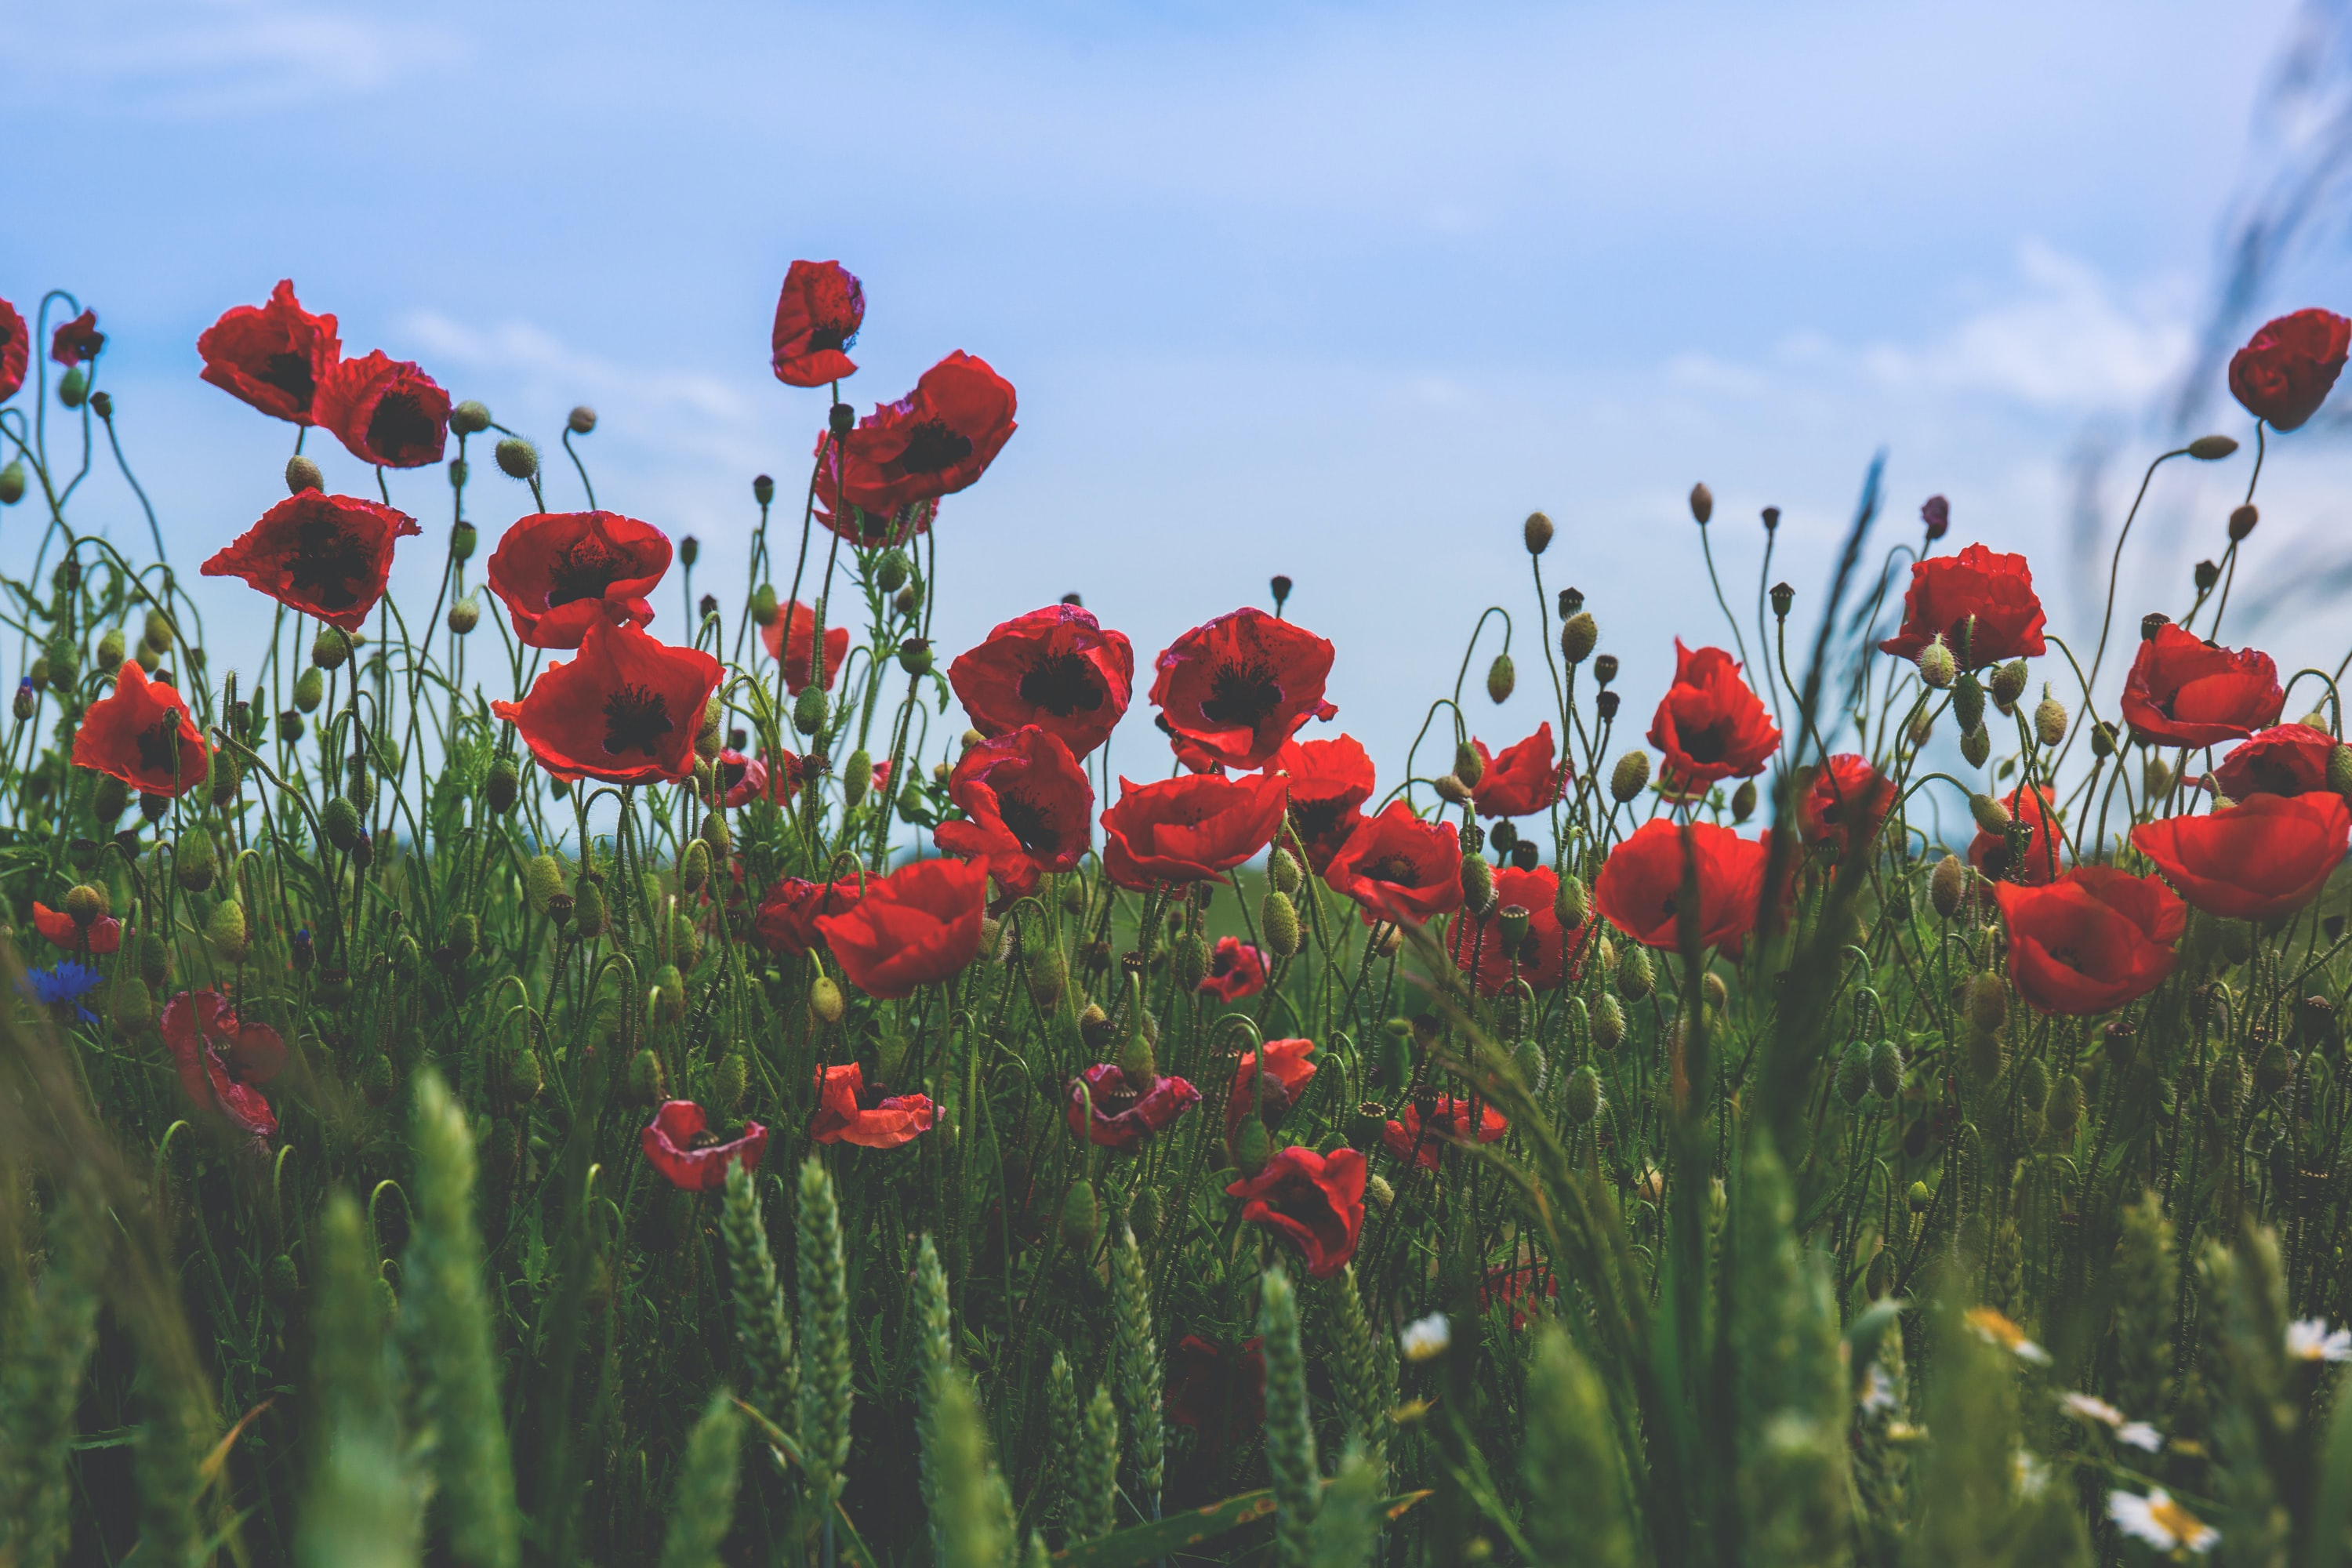 close-up photography of red poppy flowers under clear blue sky